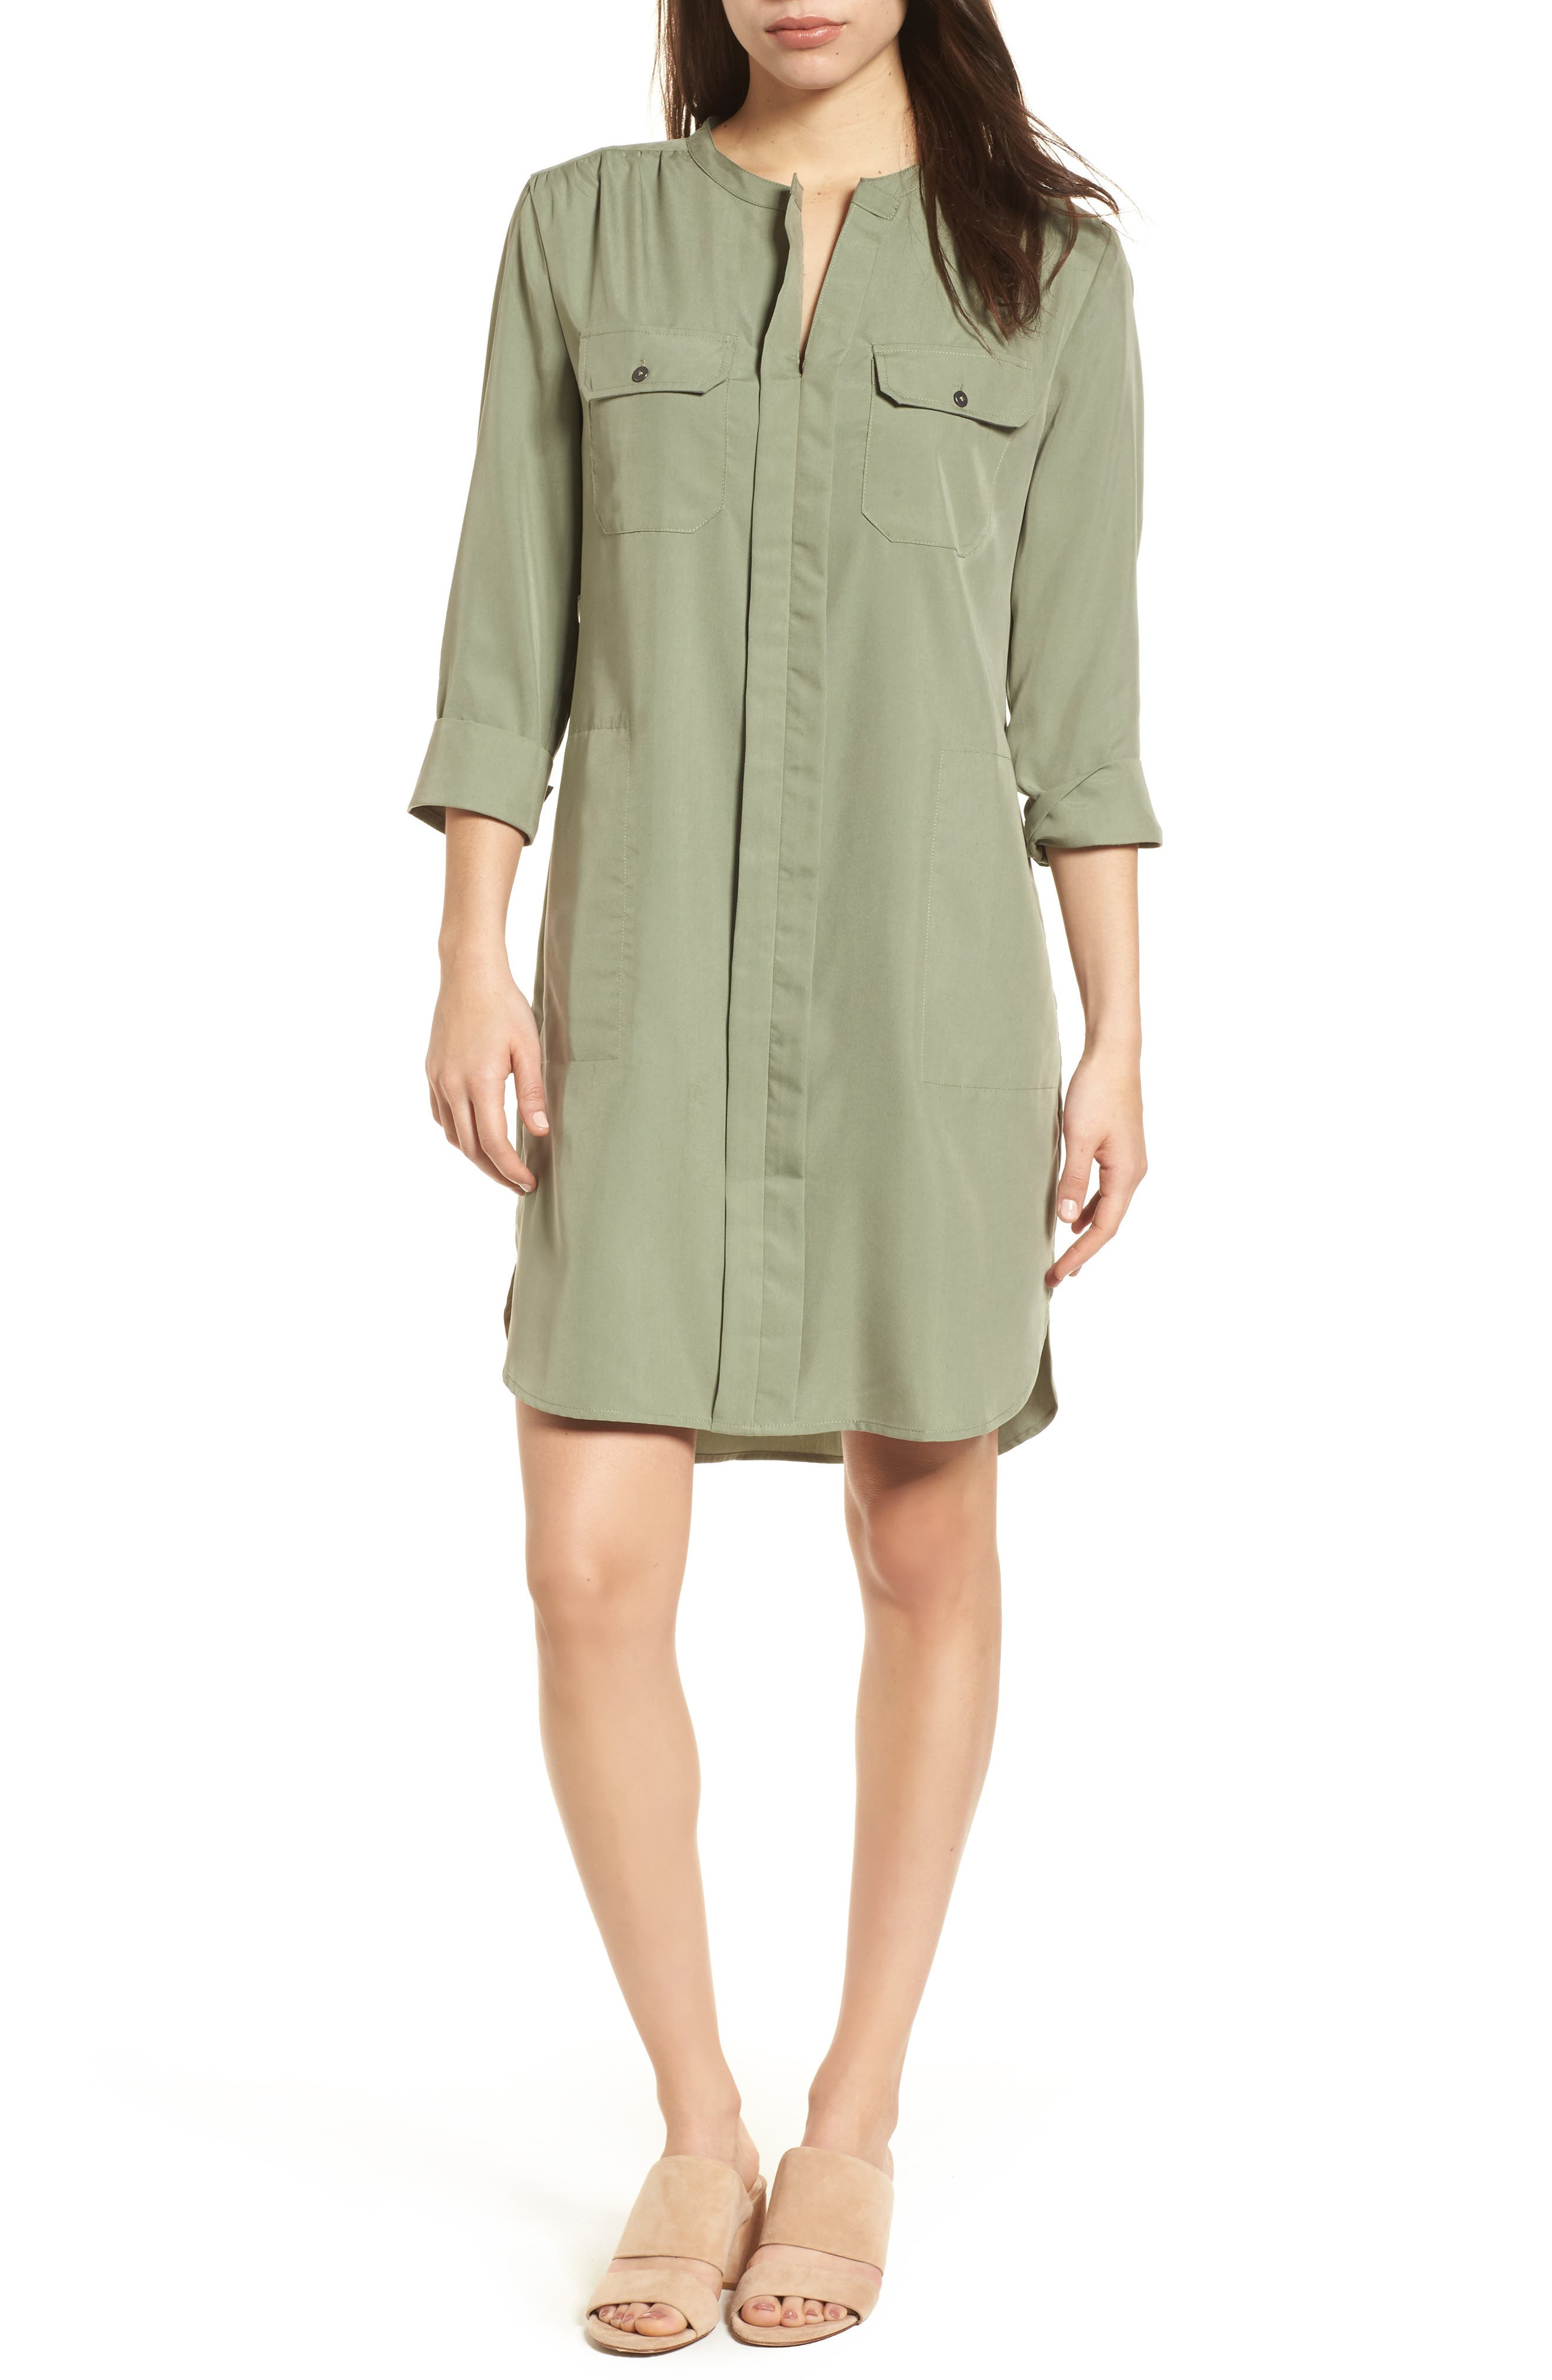 Wanderlust Shirtdress,                         Main,                         color, Spring Moss